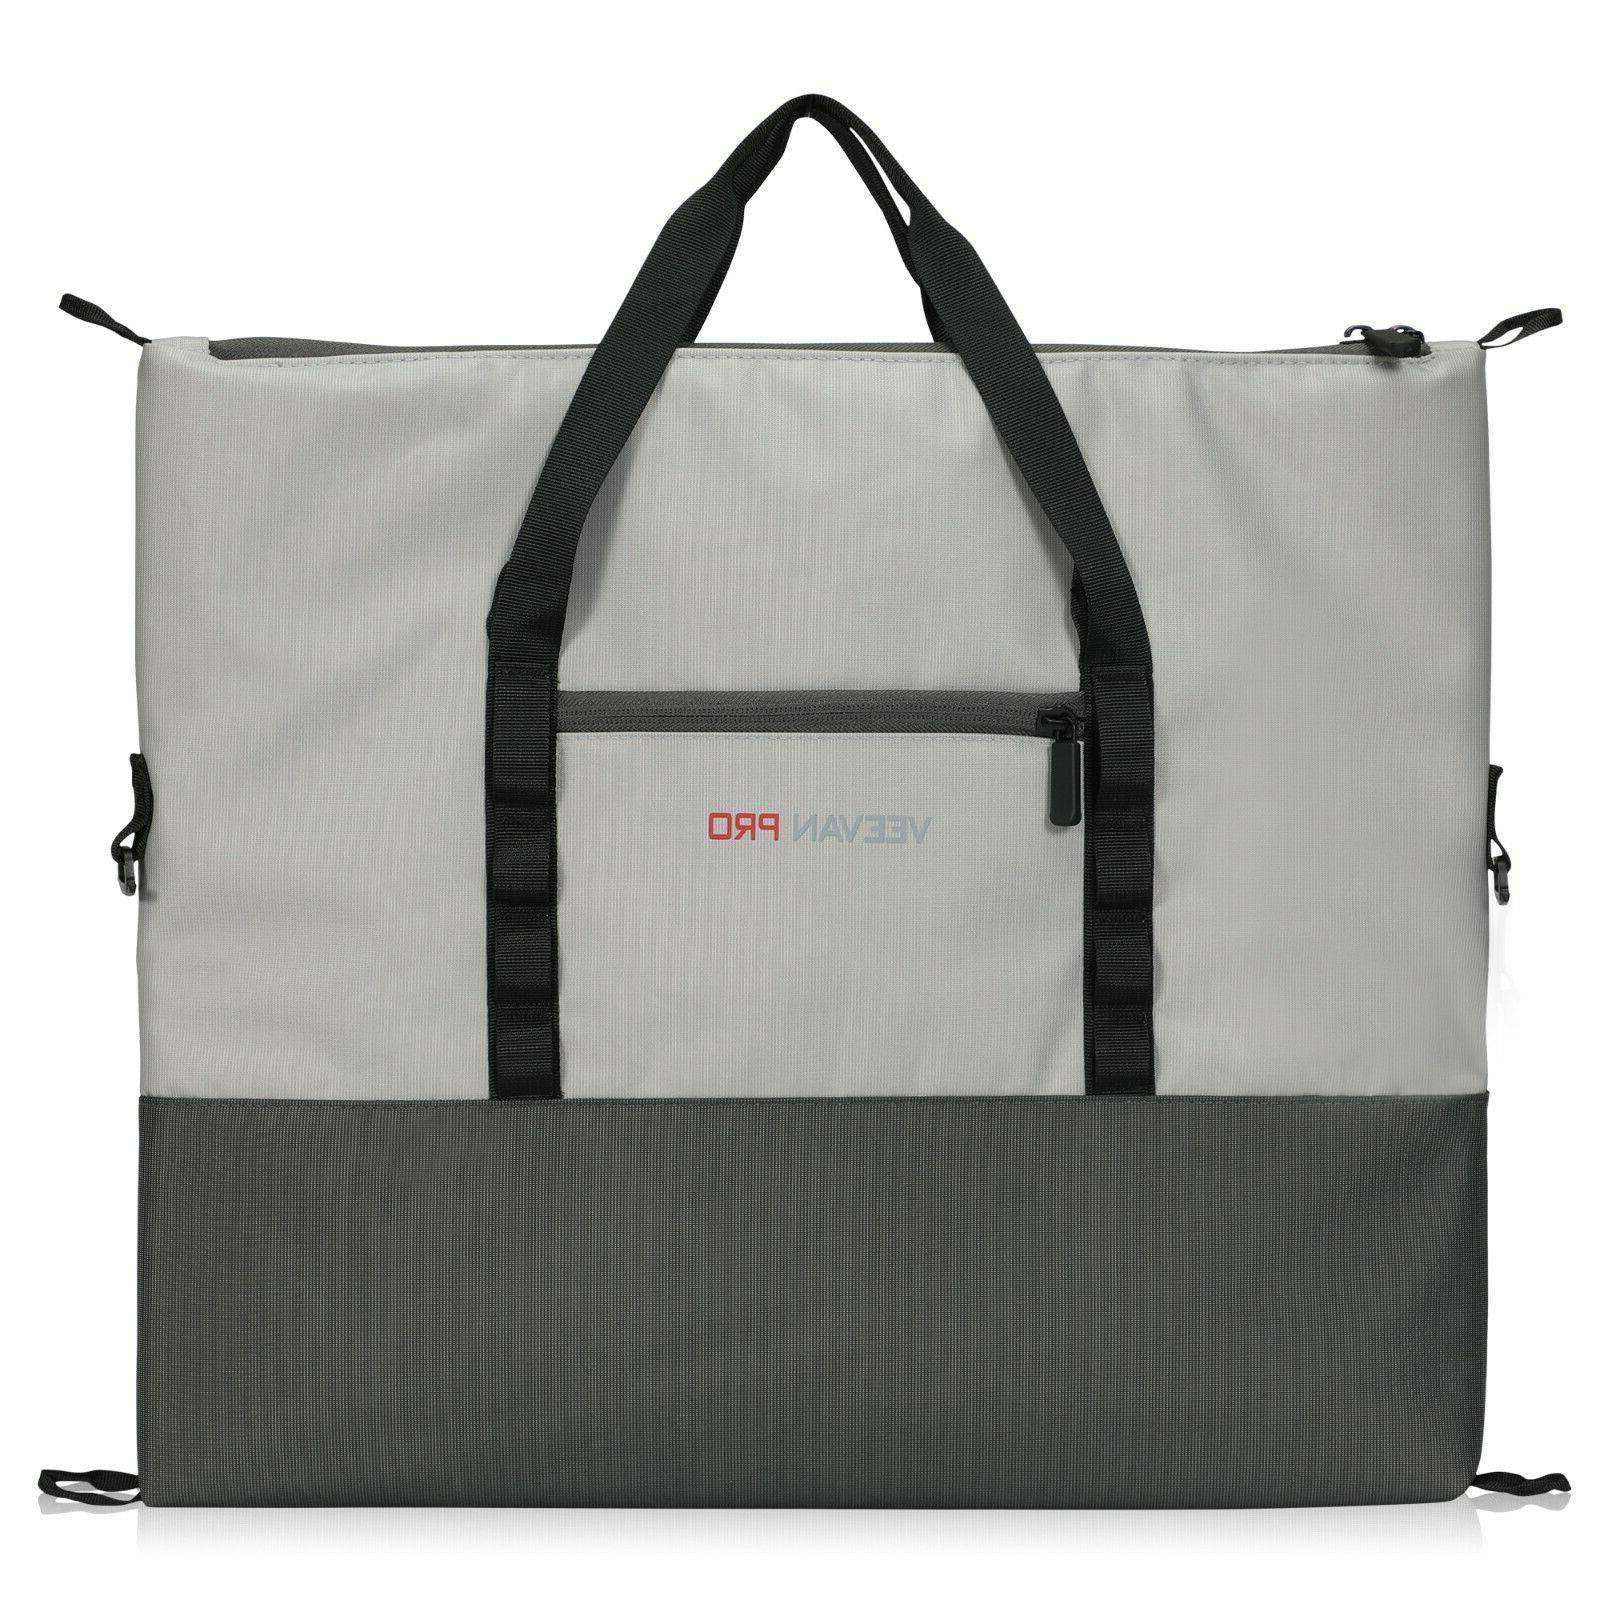 Veevanpro Convertible Insulated Tote 19L Picnic Bag 30